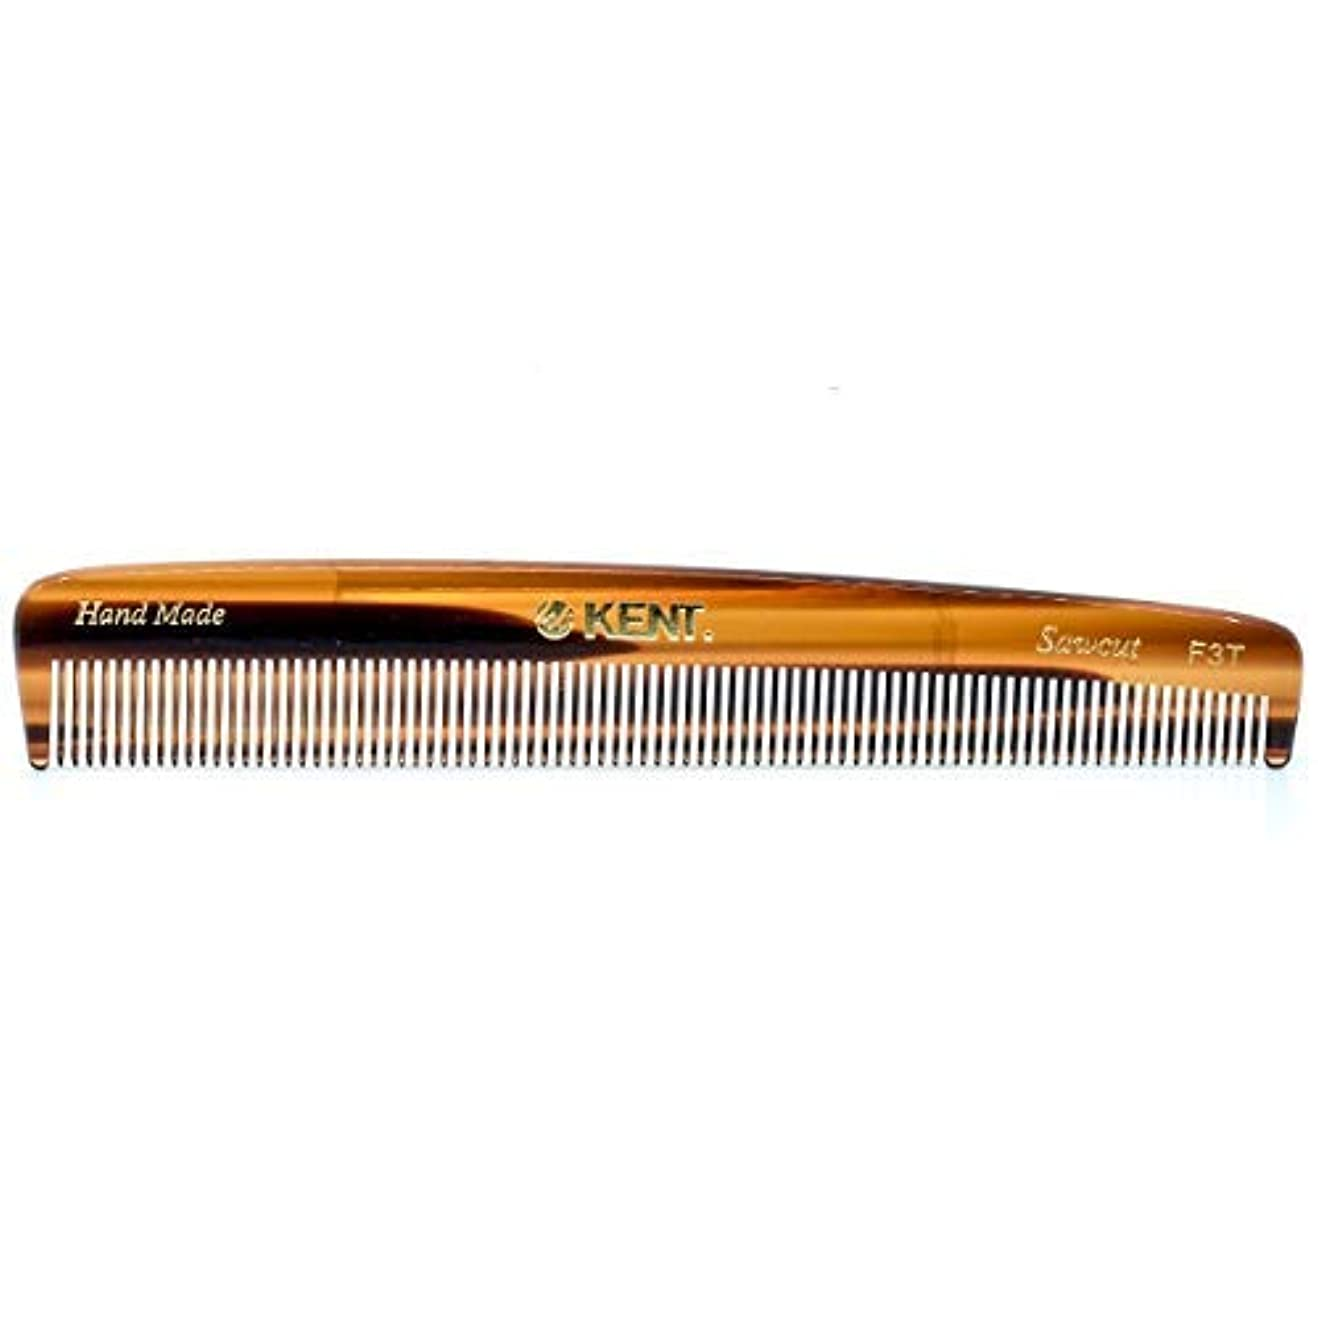 タフレシピ骨の折れるKent F3T The Hand Made - All Fine Dressing Comb 160mm/6.25 Inch [並行輸入品]